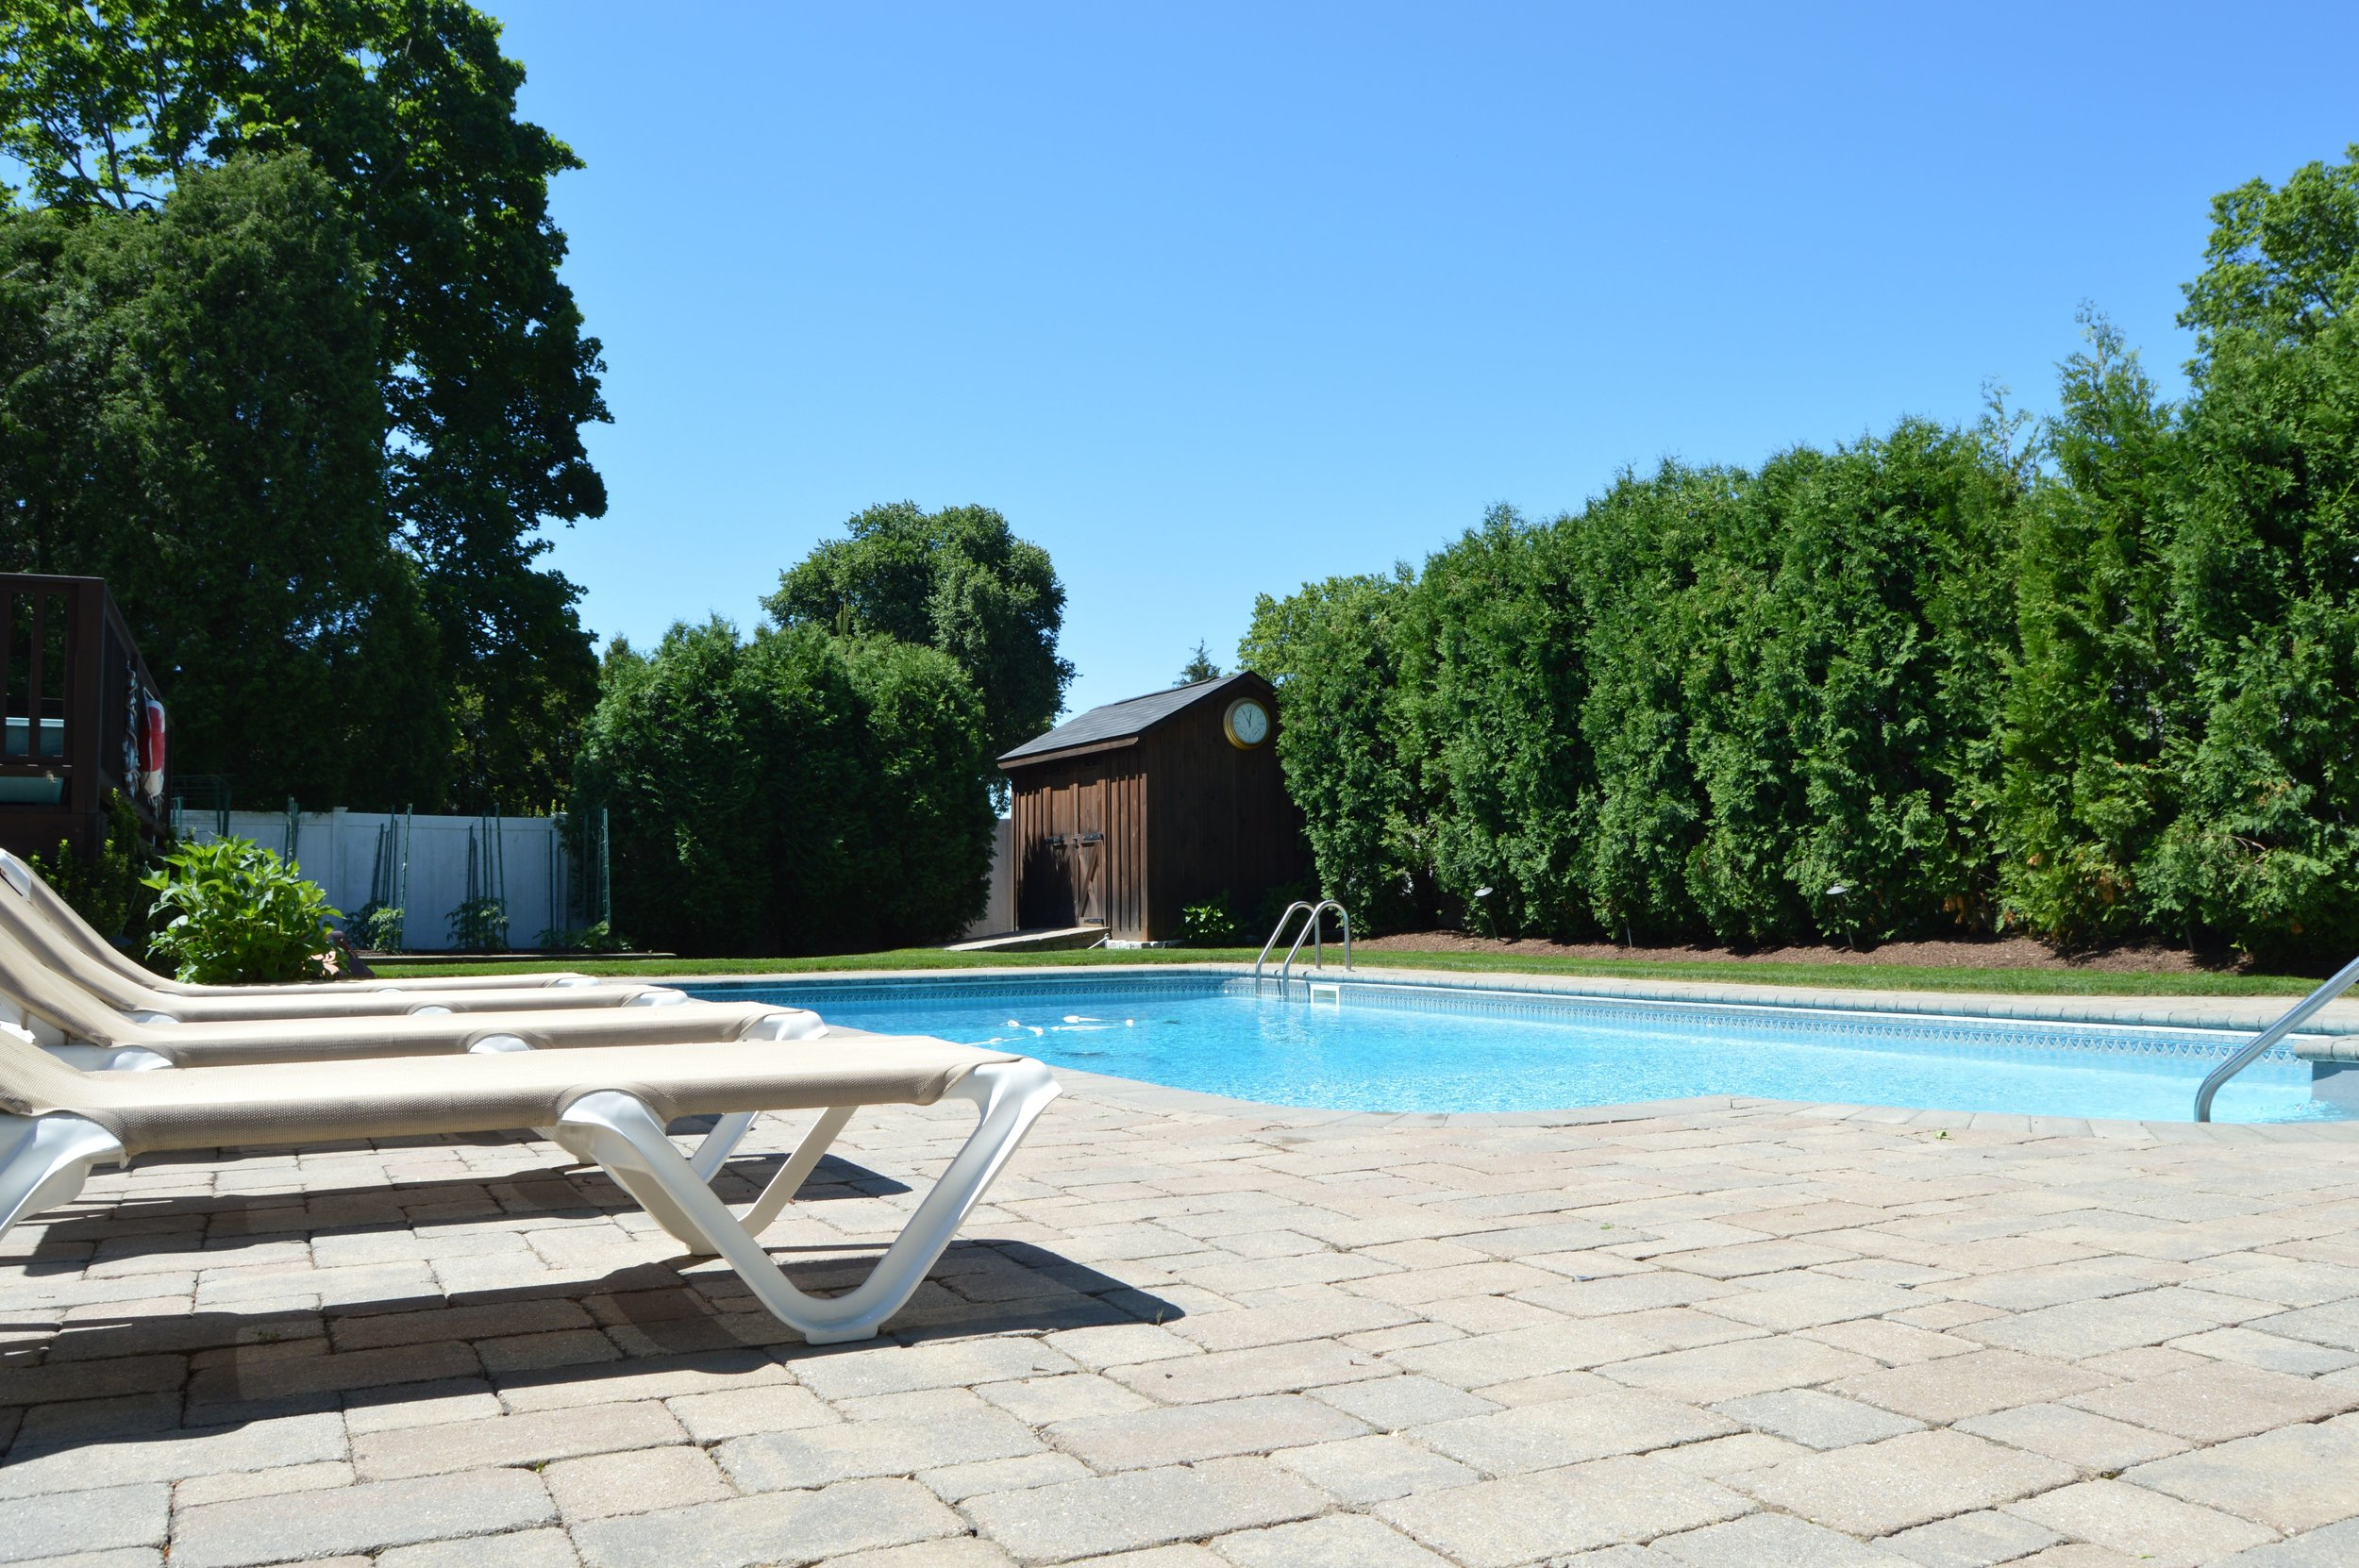 Top landscape design with pool patio in Millwood, NY